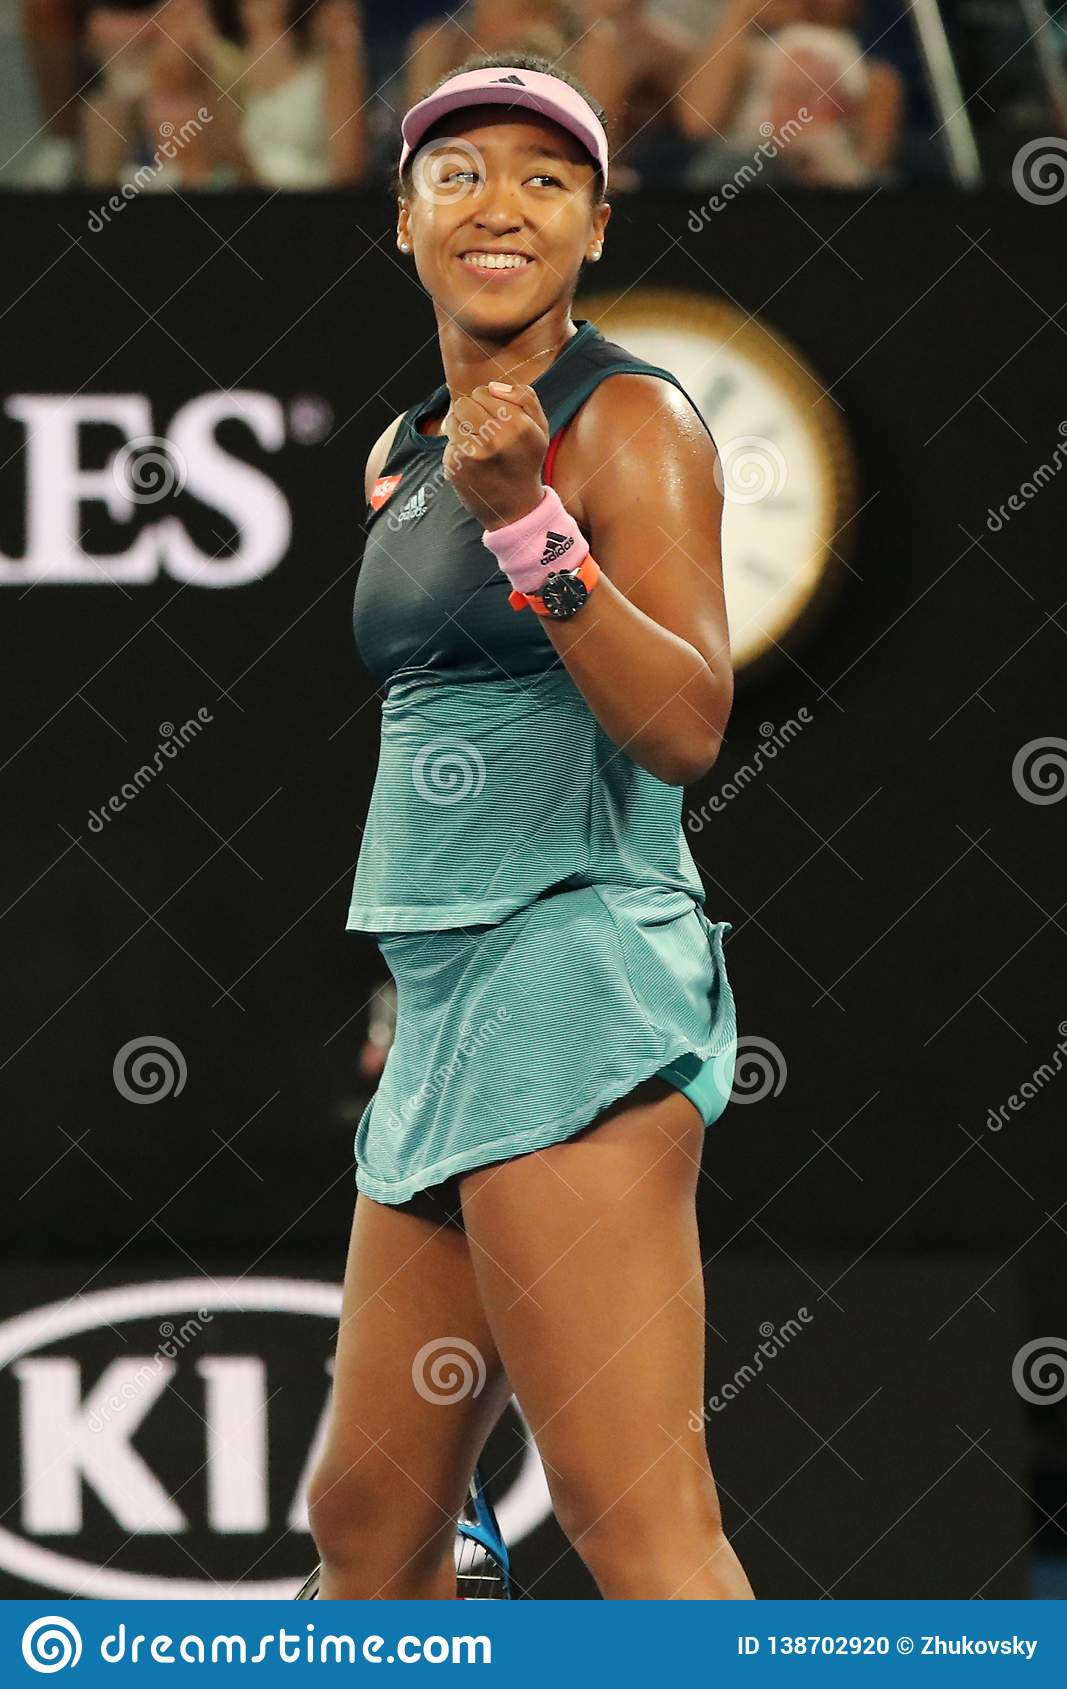 Grand Slam Champion Naomi Osaka of Japan celebrates victory after her semifinal match at 2019 Australian Open in Melbourne Park